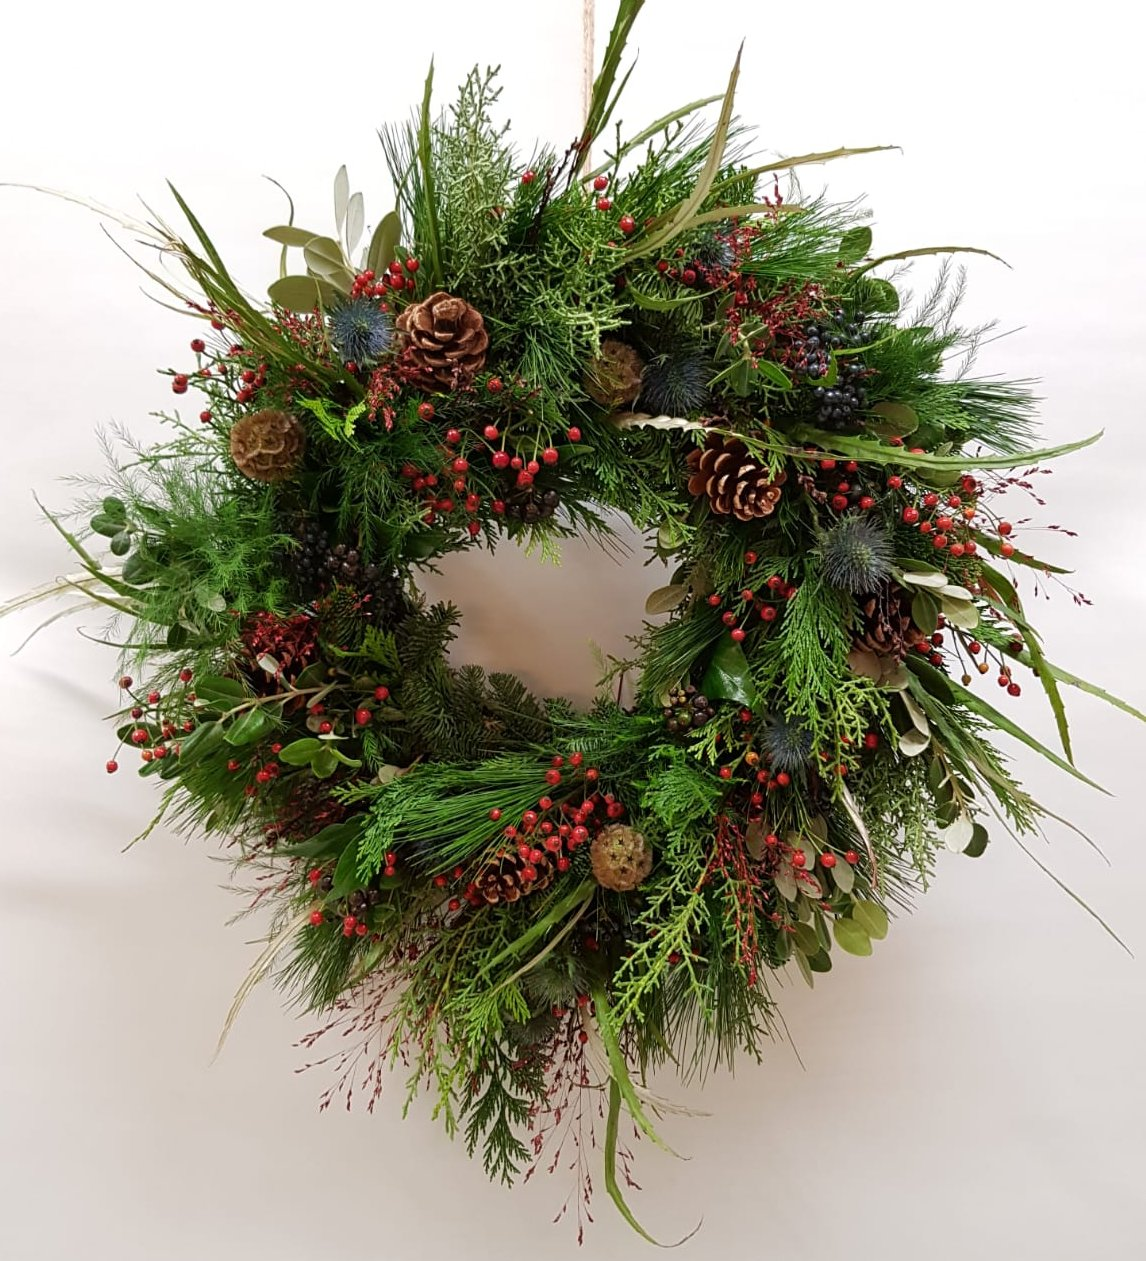 Christmas Wreath Workshop Sunday 1 December 11.00-13.00 SOLD OUT